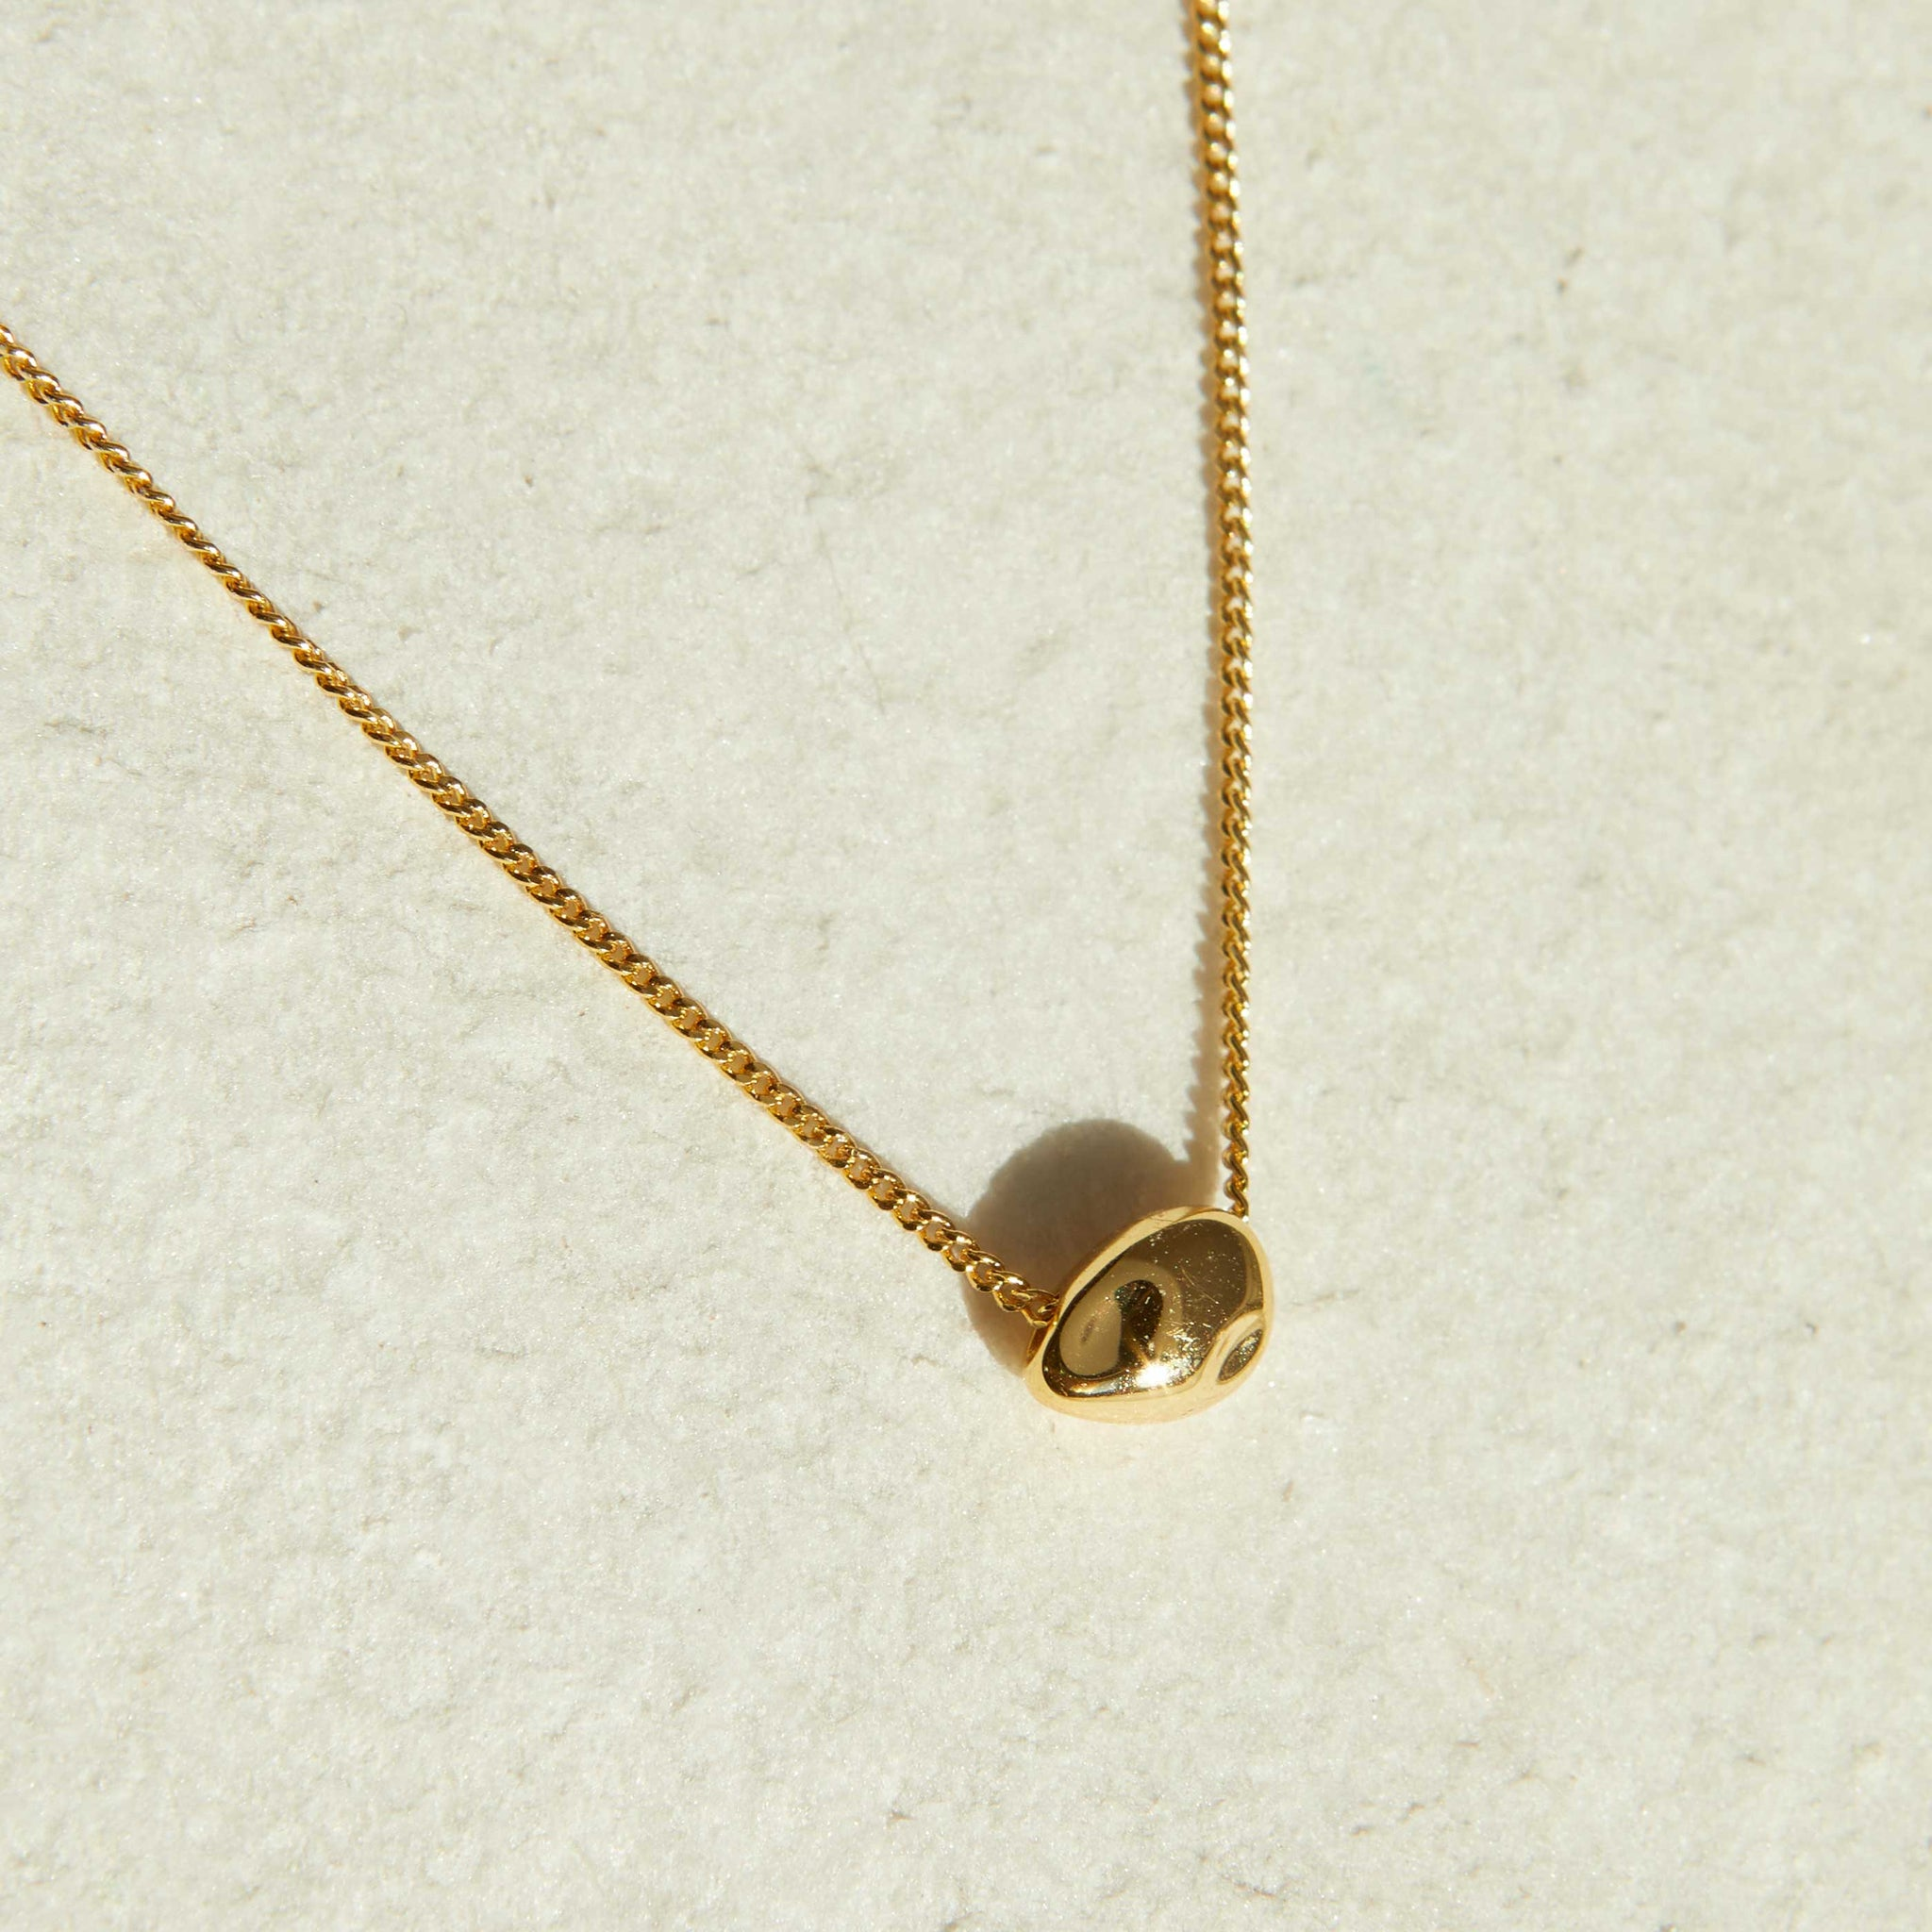 Molten Pendant Necklace in Gold